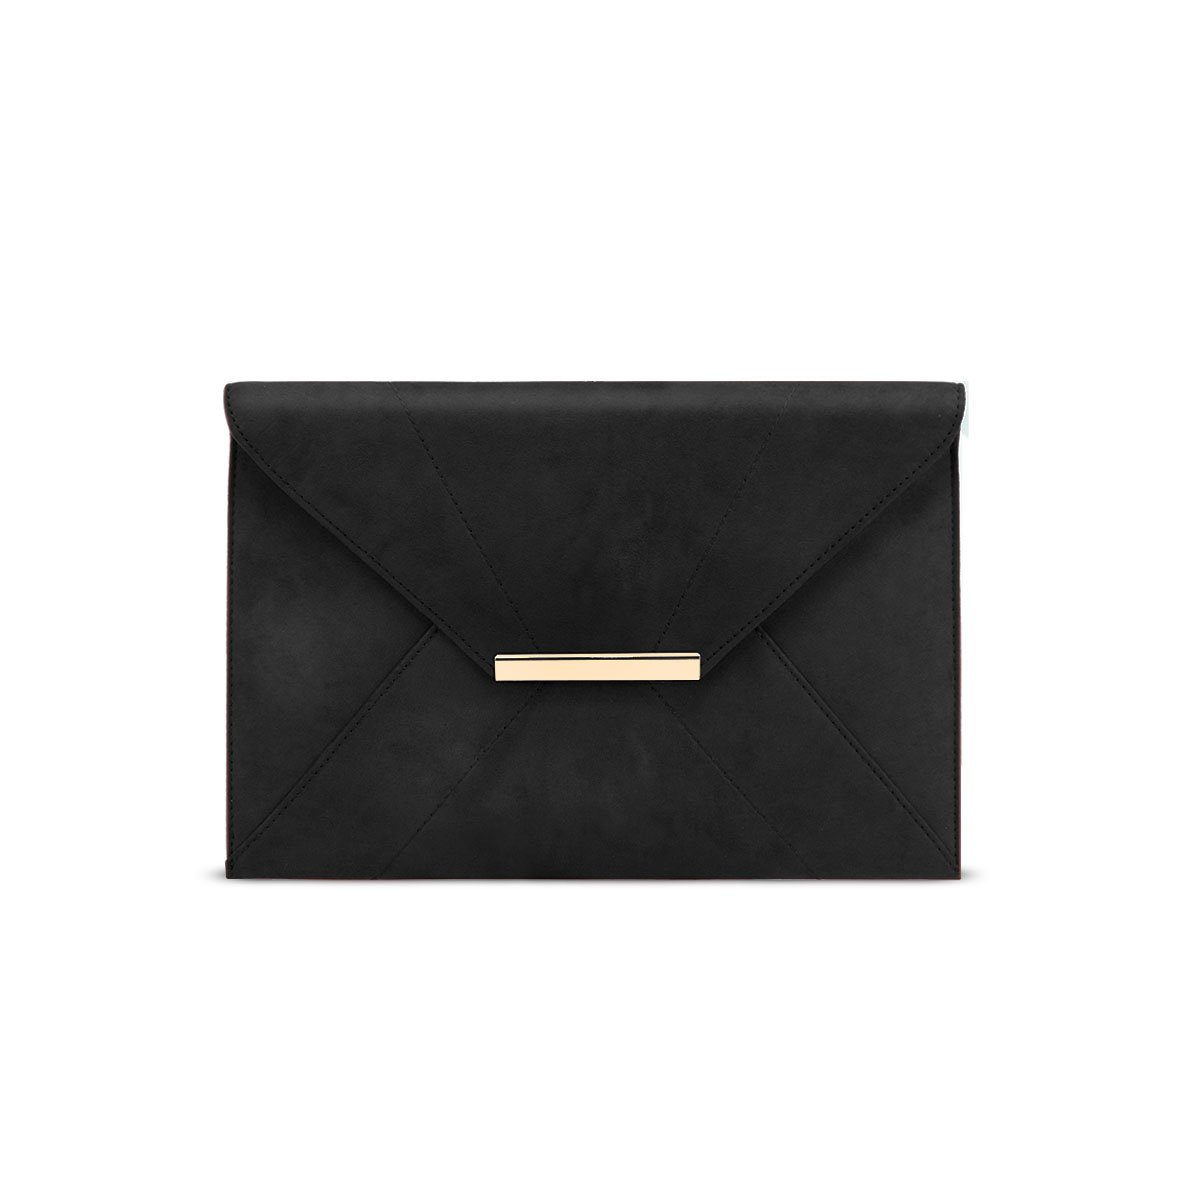 Envelope Wristlet Clutch Crossbody Bag with Chain Strap,Anna Smith Womens Evening Clutches Bag Faux Suede Magnet Hook Ladies Envelope Wedding Party Prom Thin Bags with Pocket